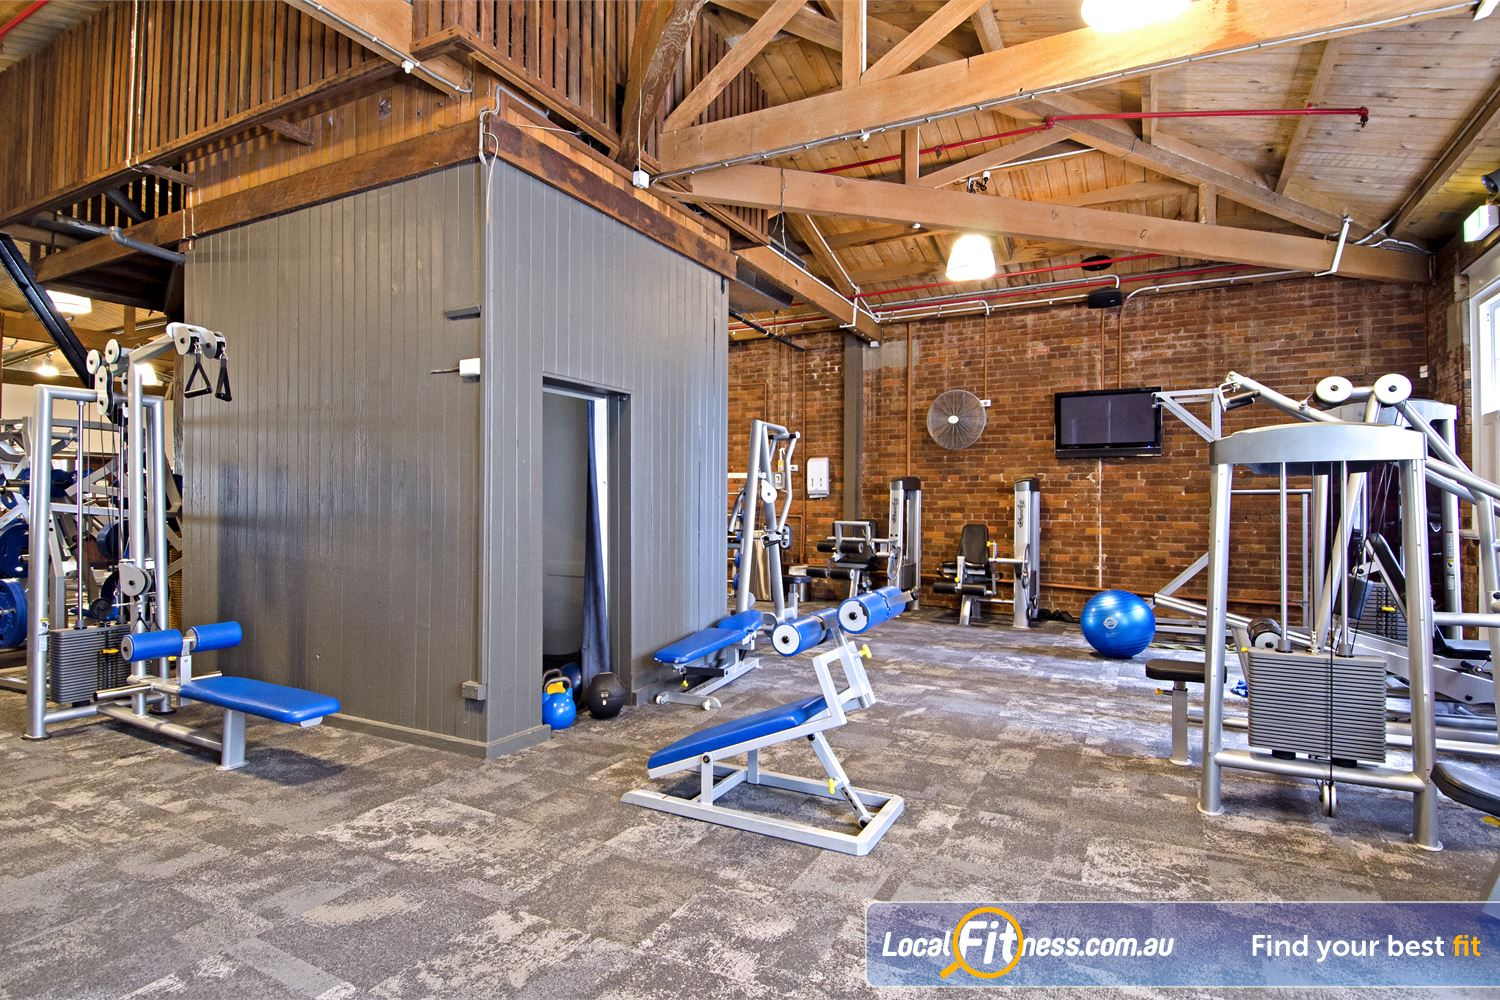 Goodlife Health Clubs Edward St Brisbane State of the art equipment from Life Fitness, Calgym and Strive.